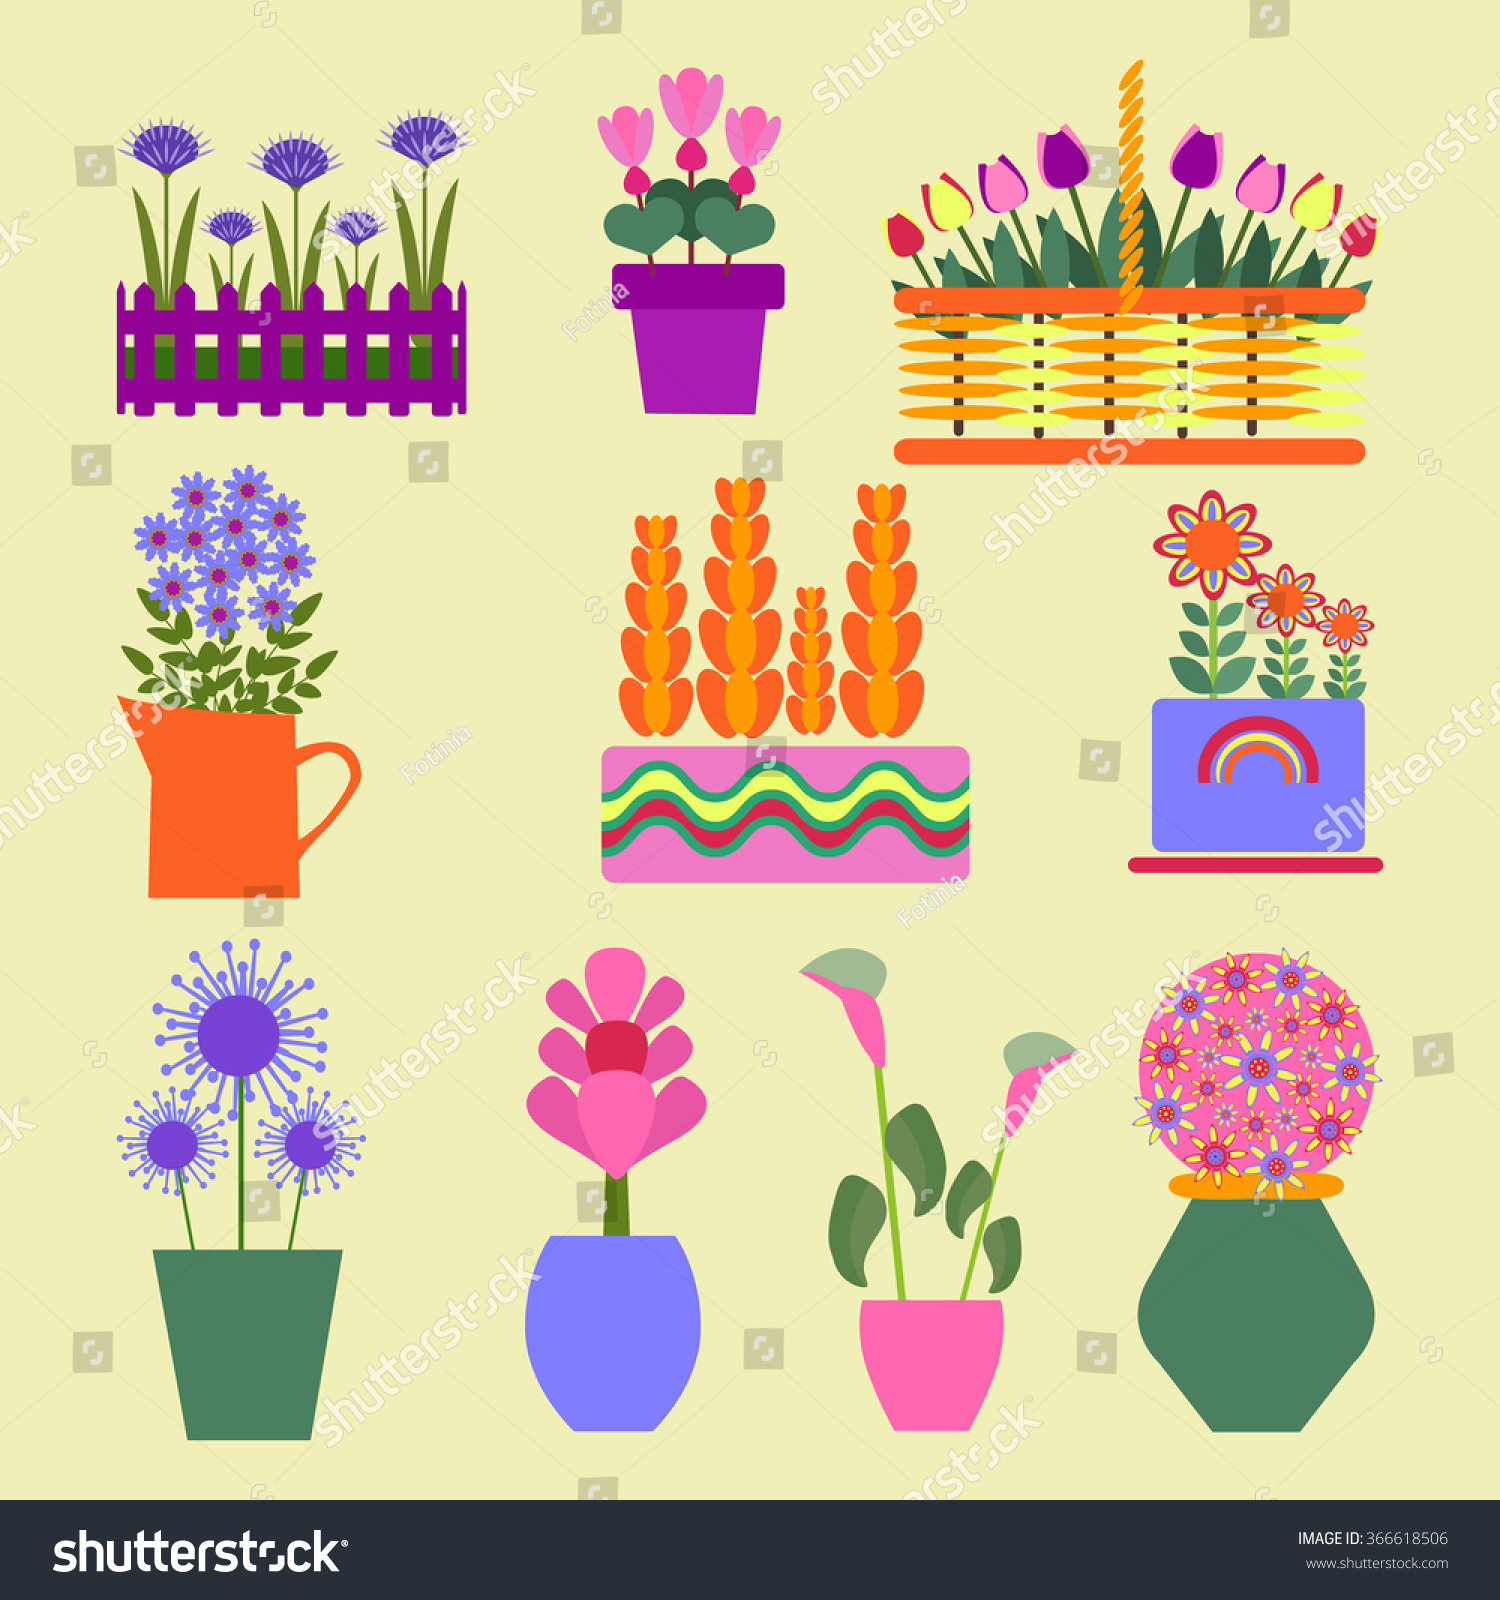 Plants for spring and summer - Garden Plants Spring And Summer Vector Flat Illustrations Set Icons For